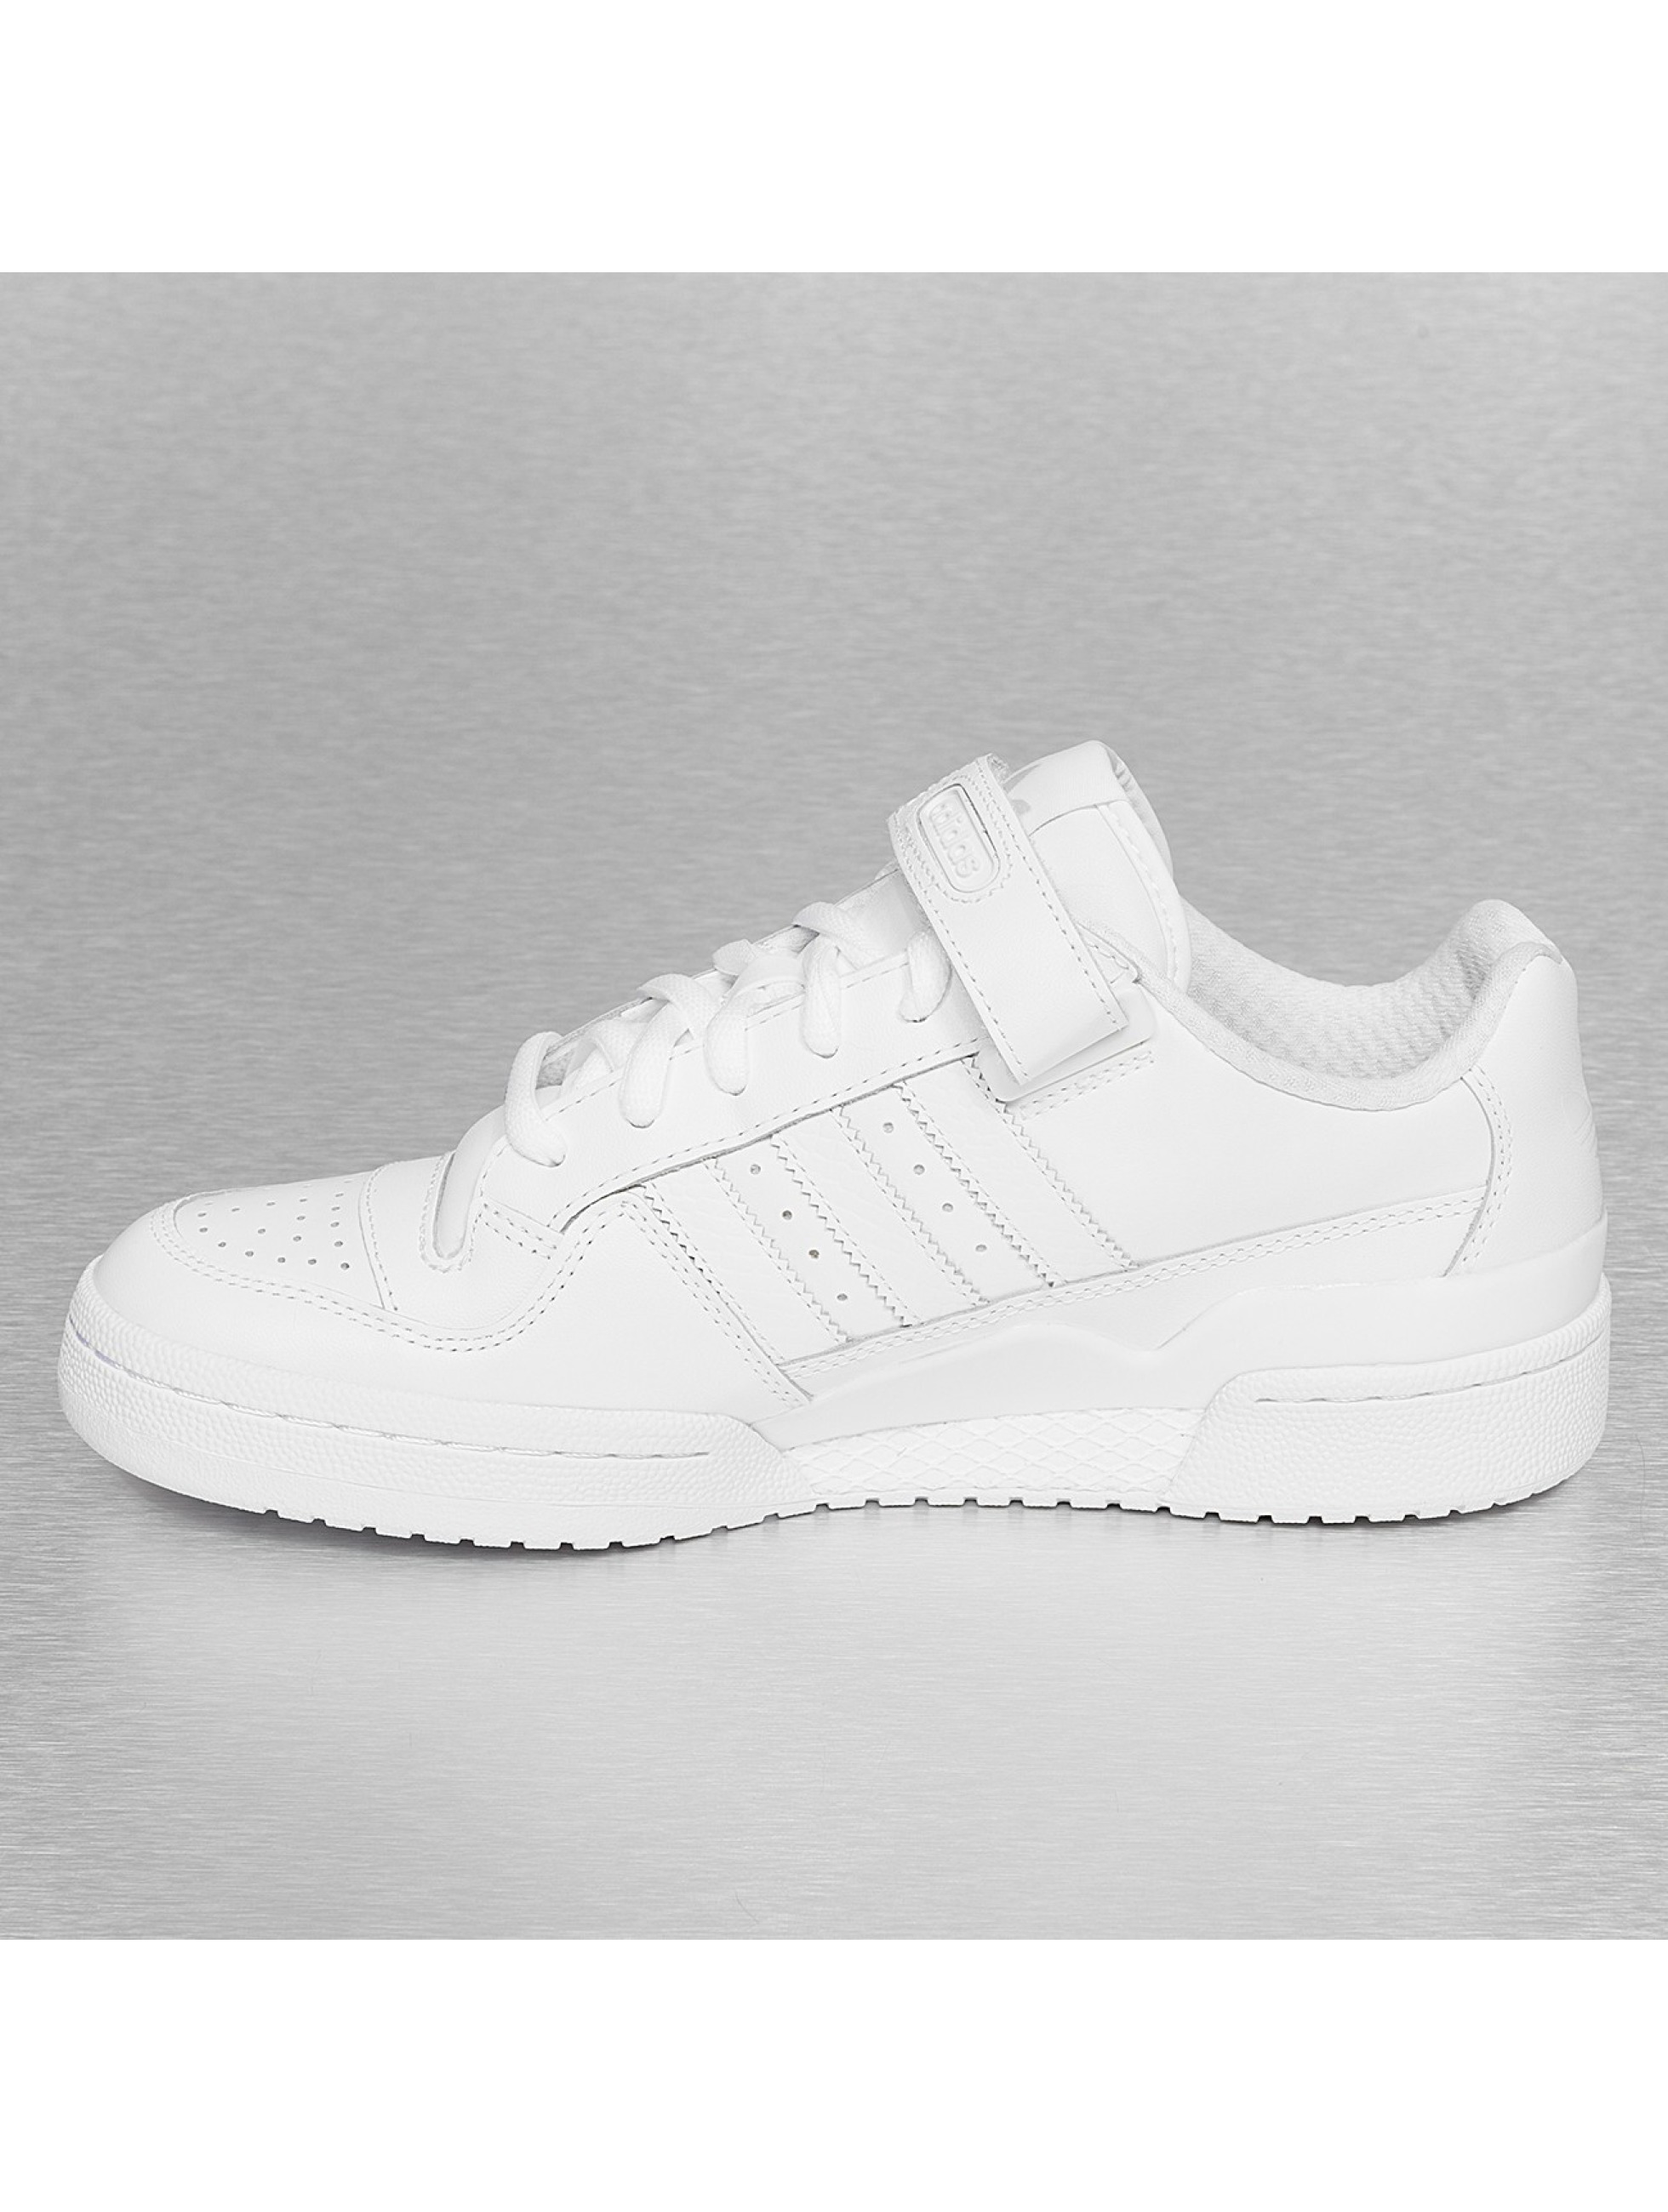 buy online cb83d 631fa adidas forum lo rs white